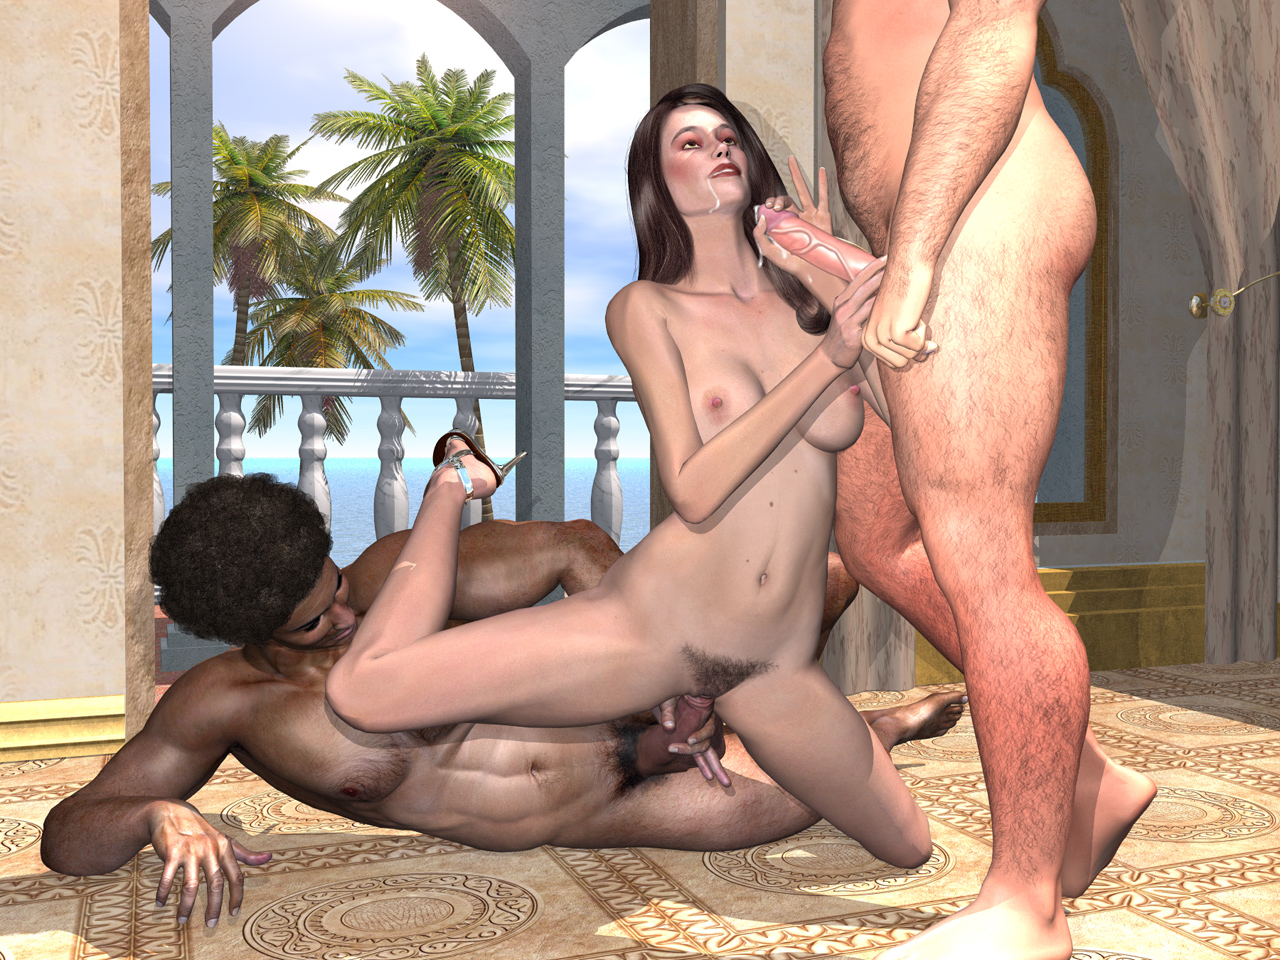 Hot naked fantasy fuck image hentai videos